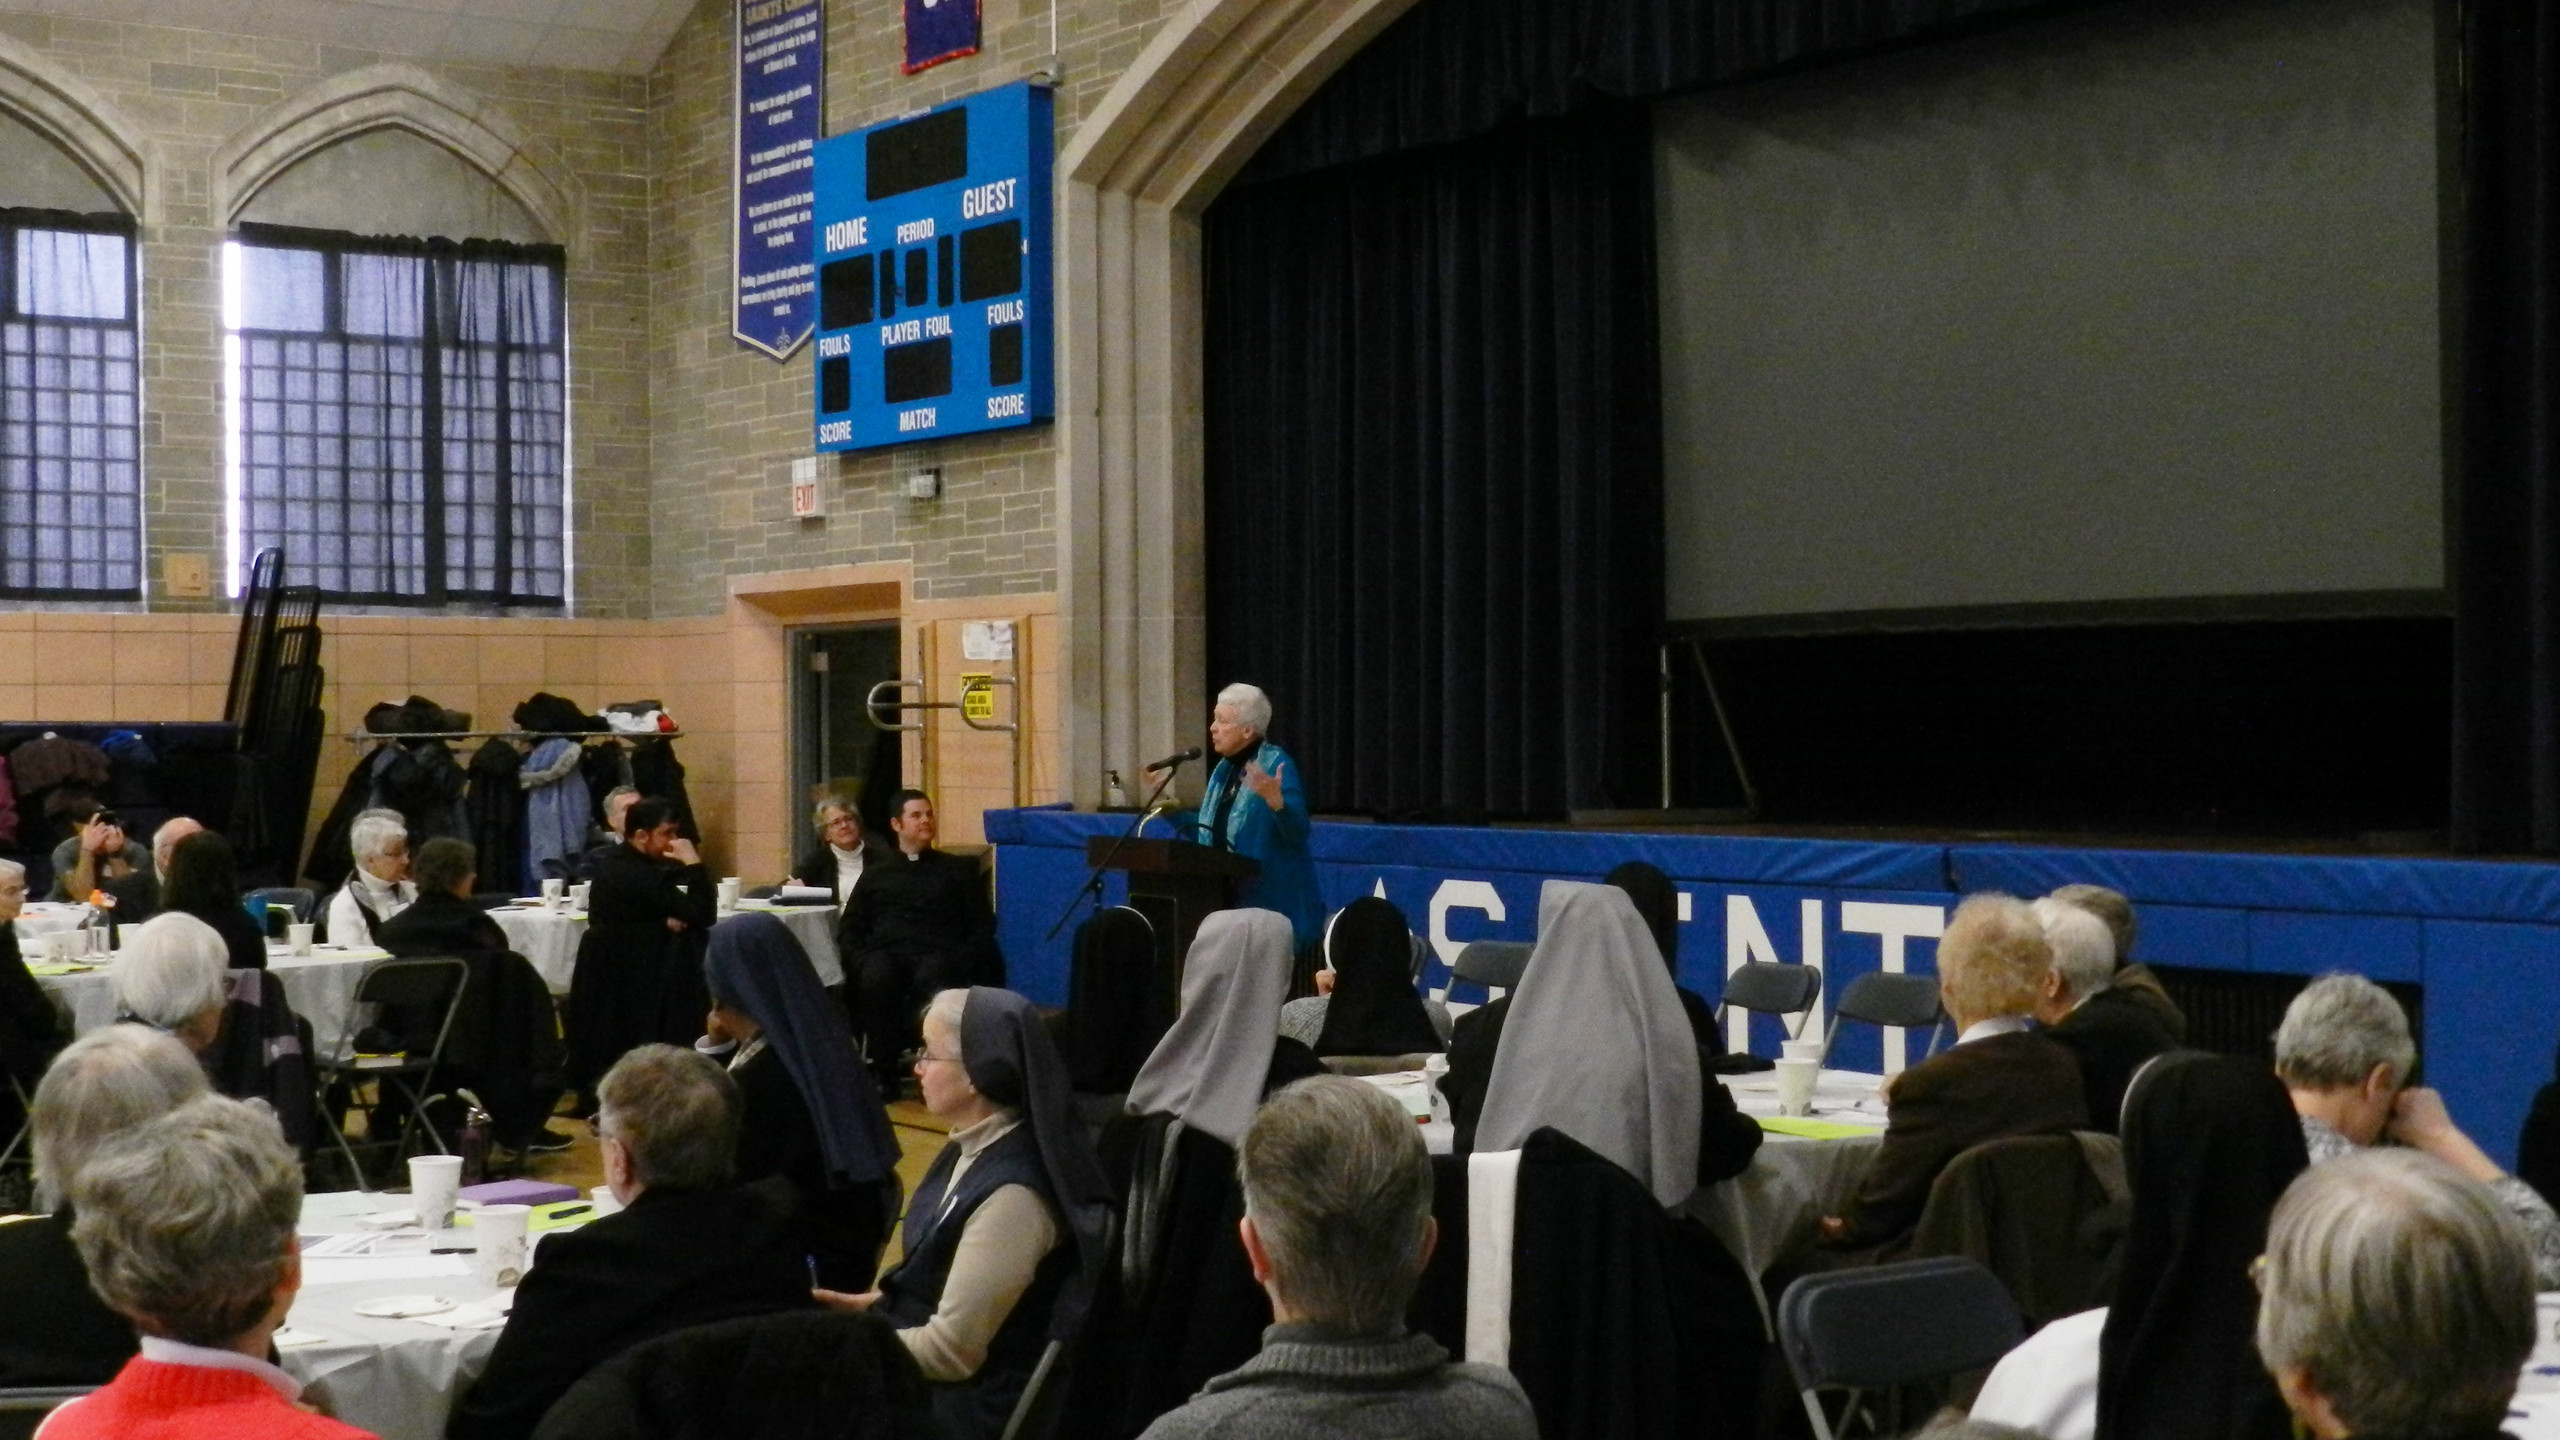 Sister Patricia Crowley, OSB with crowd.